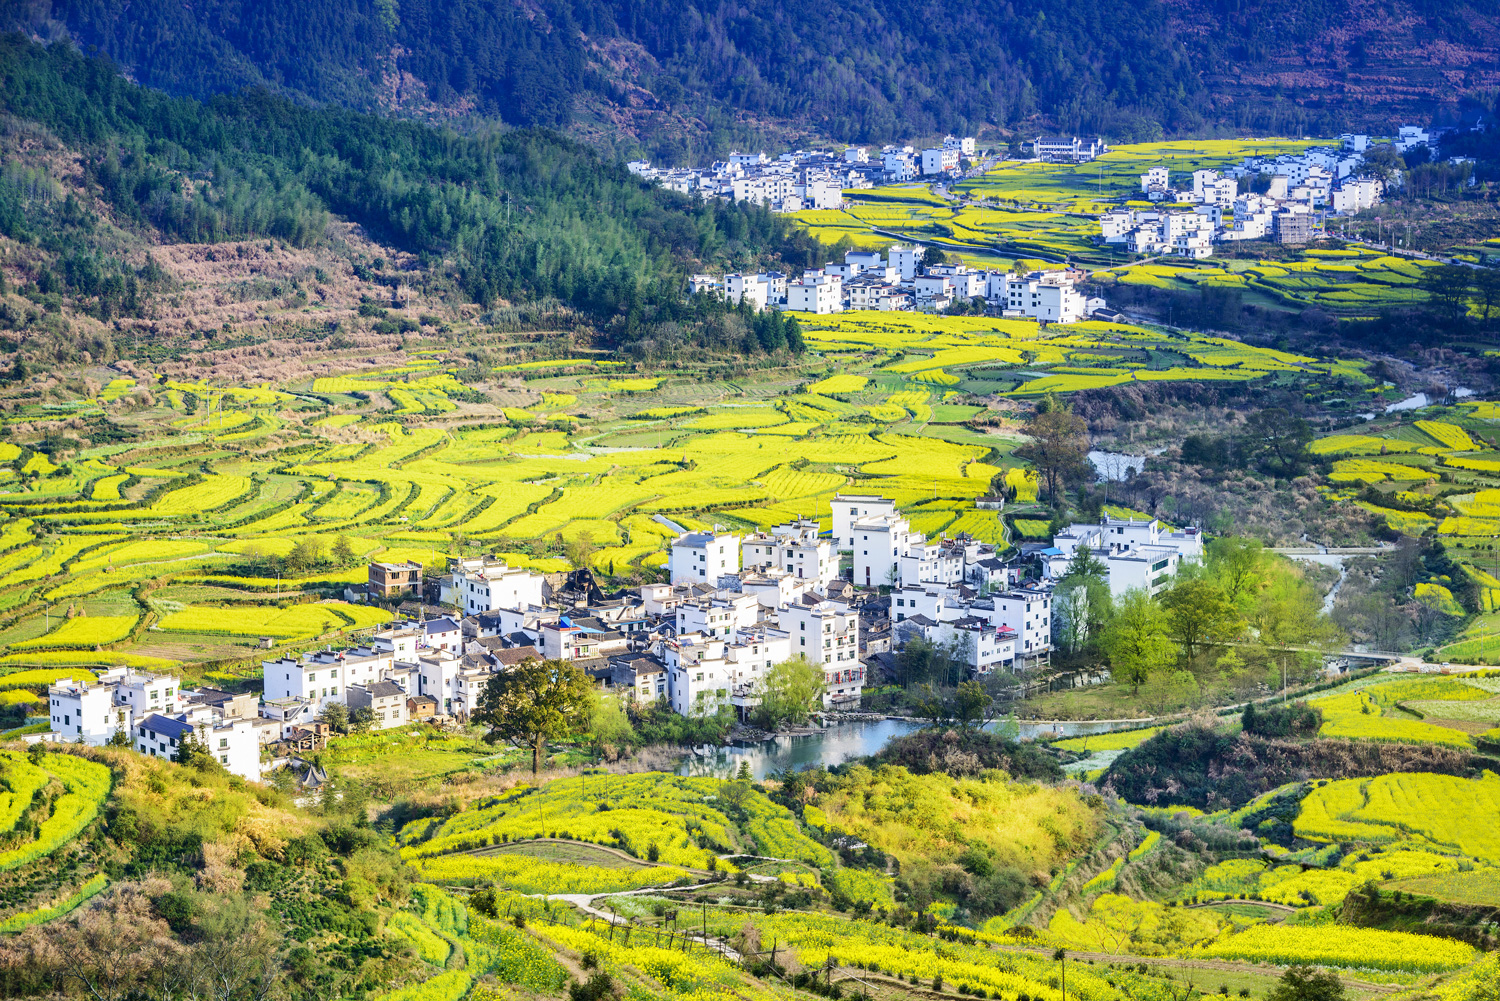 Wuyuan County is known as the most beautiful village of China